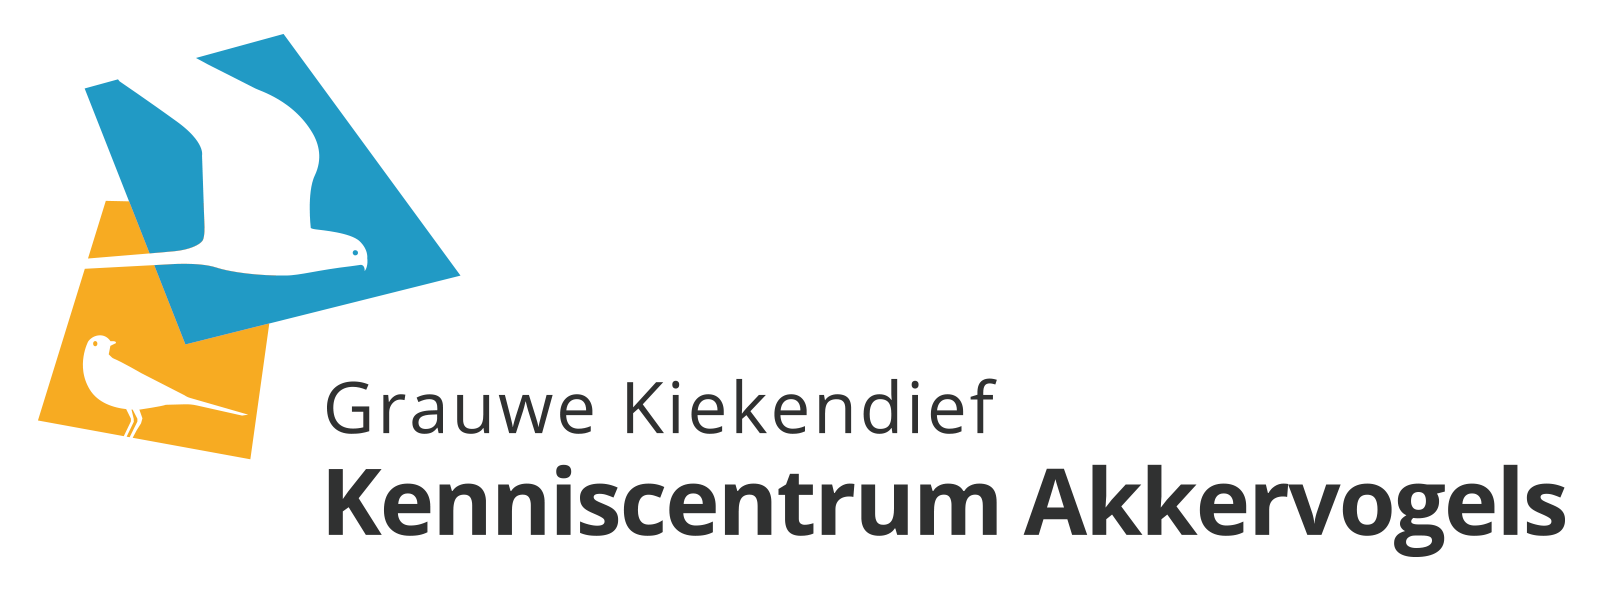 Grauwe Kiekendief - Kenniscentrum Akkervogels